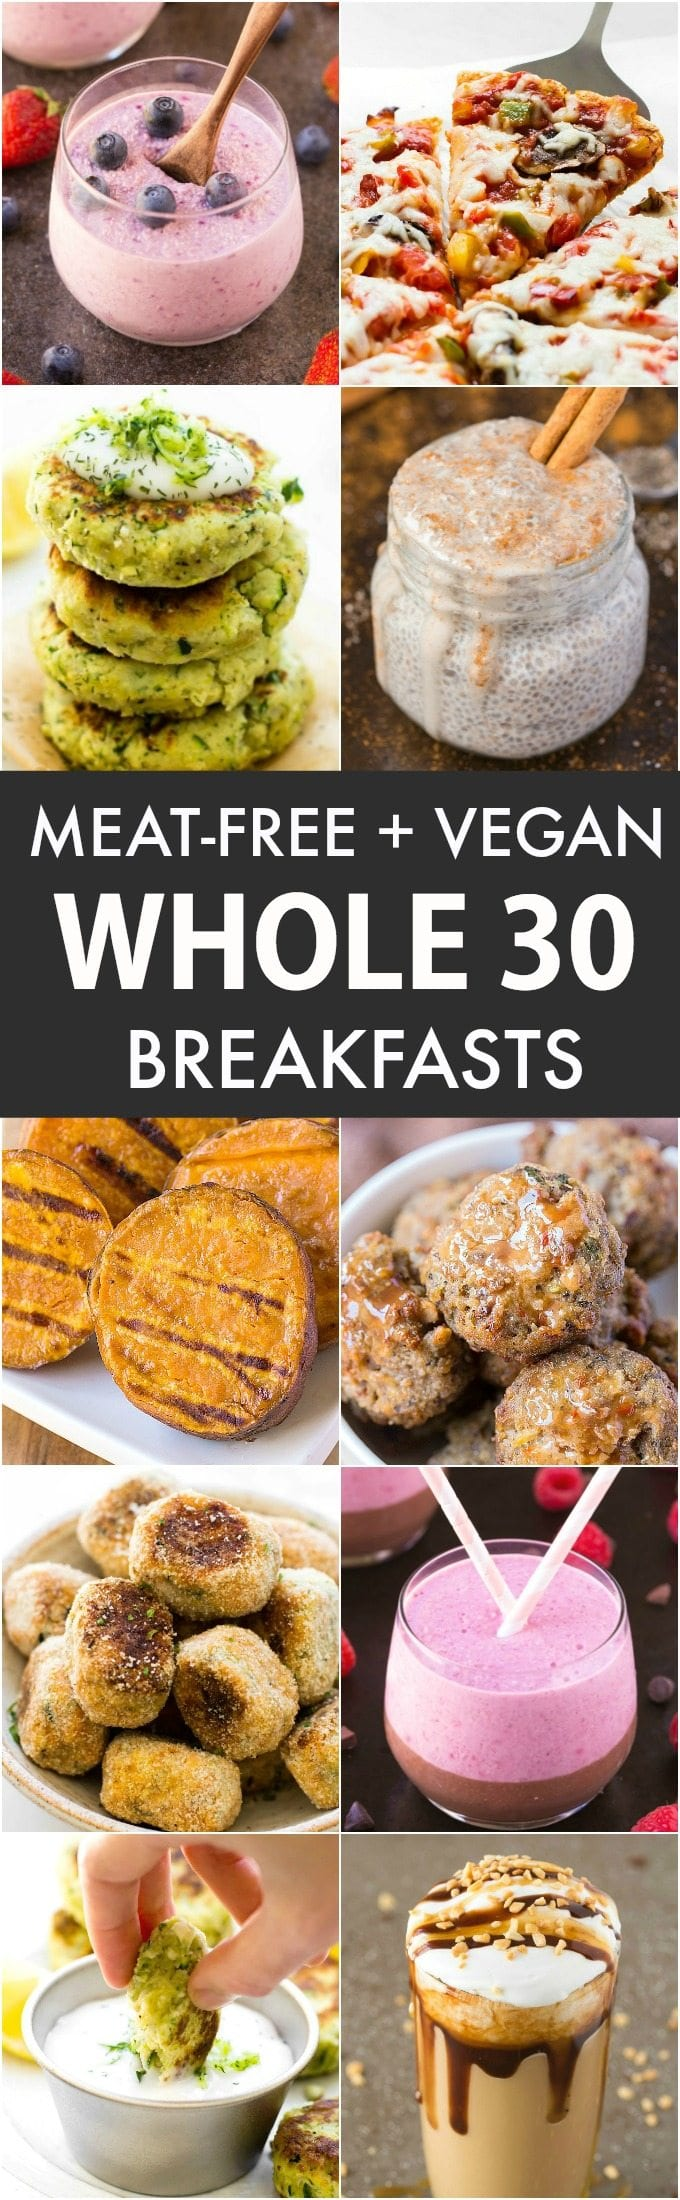 Meat-Free + Vegan WHOLE30 Breakfast Recipes (Paleo, Whole30, Gluten Free, Keto)- The BEST quick and easy whole30 breakfasts made 100% plant based- Sweet and savory options! #whole30 #meatfree #vegan #whole30recipes #whole30breakfasts- Recipes on thebigmansworld.com